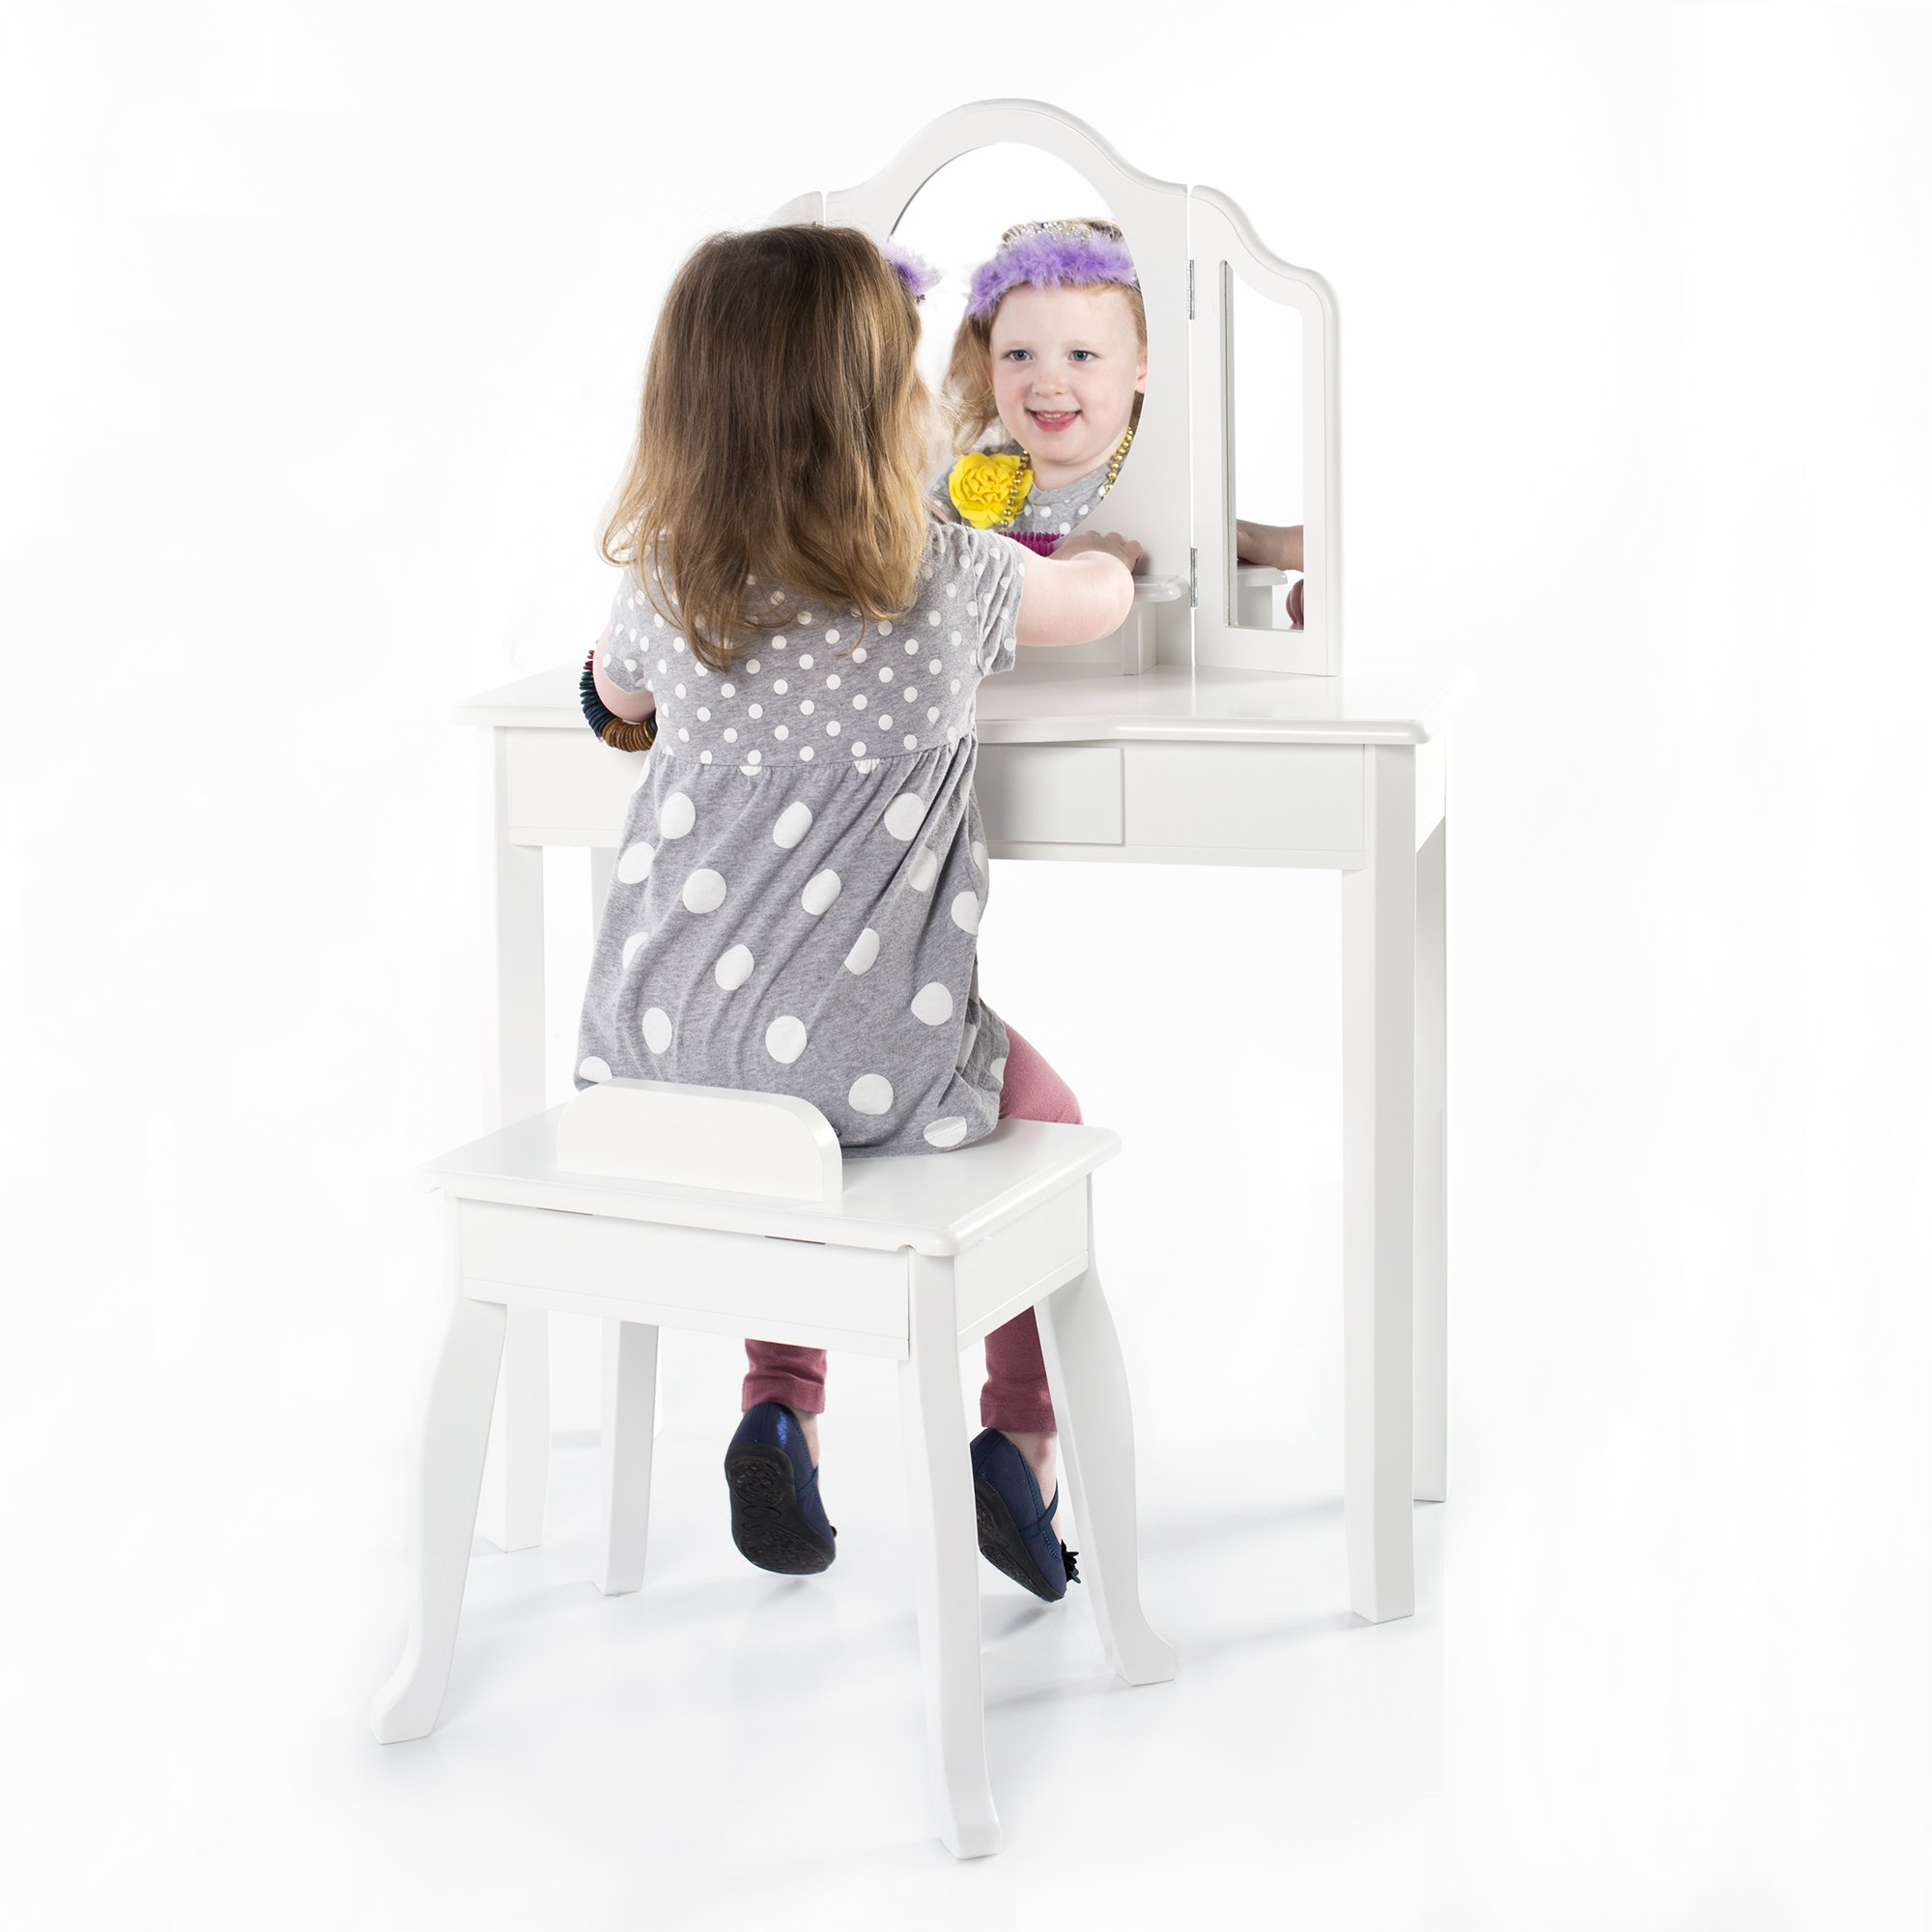 Girls Sweetheart Vanity Table and Stool Set with 3 Mirrors and Make-Up Drawer - White